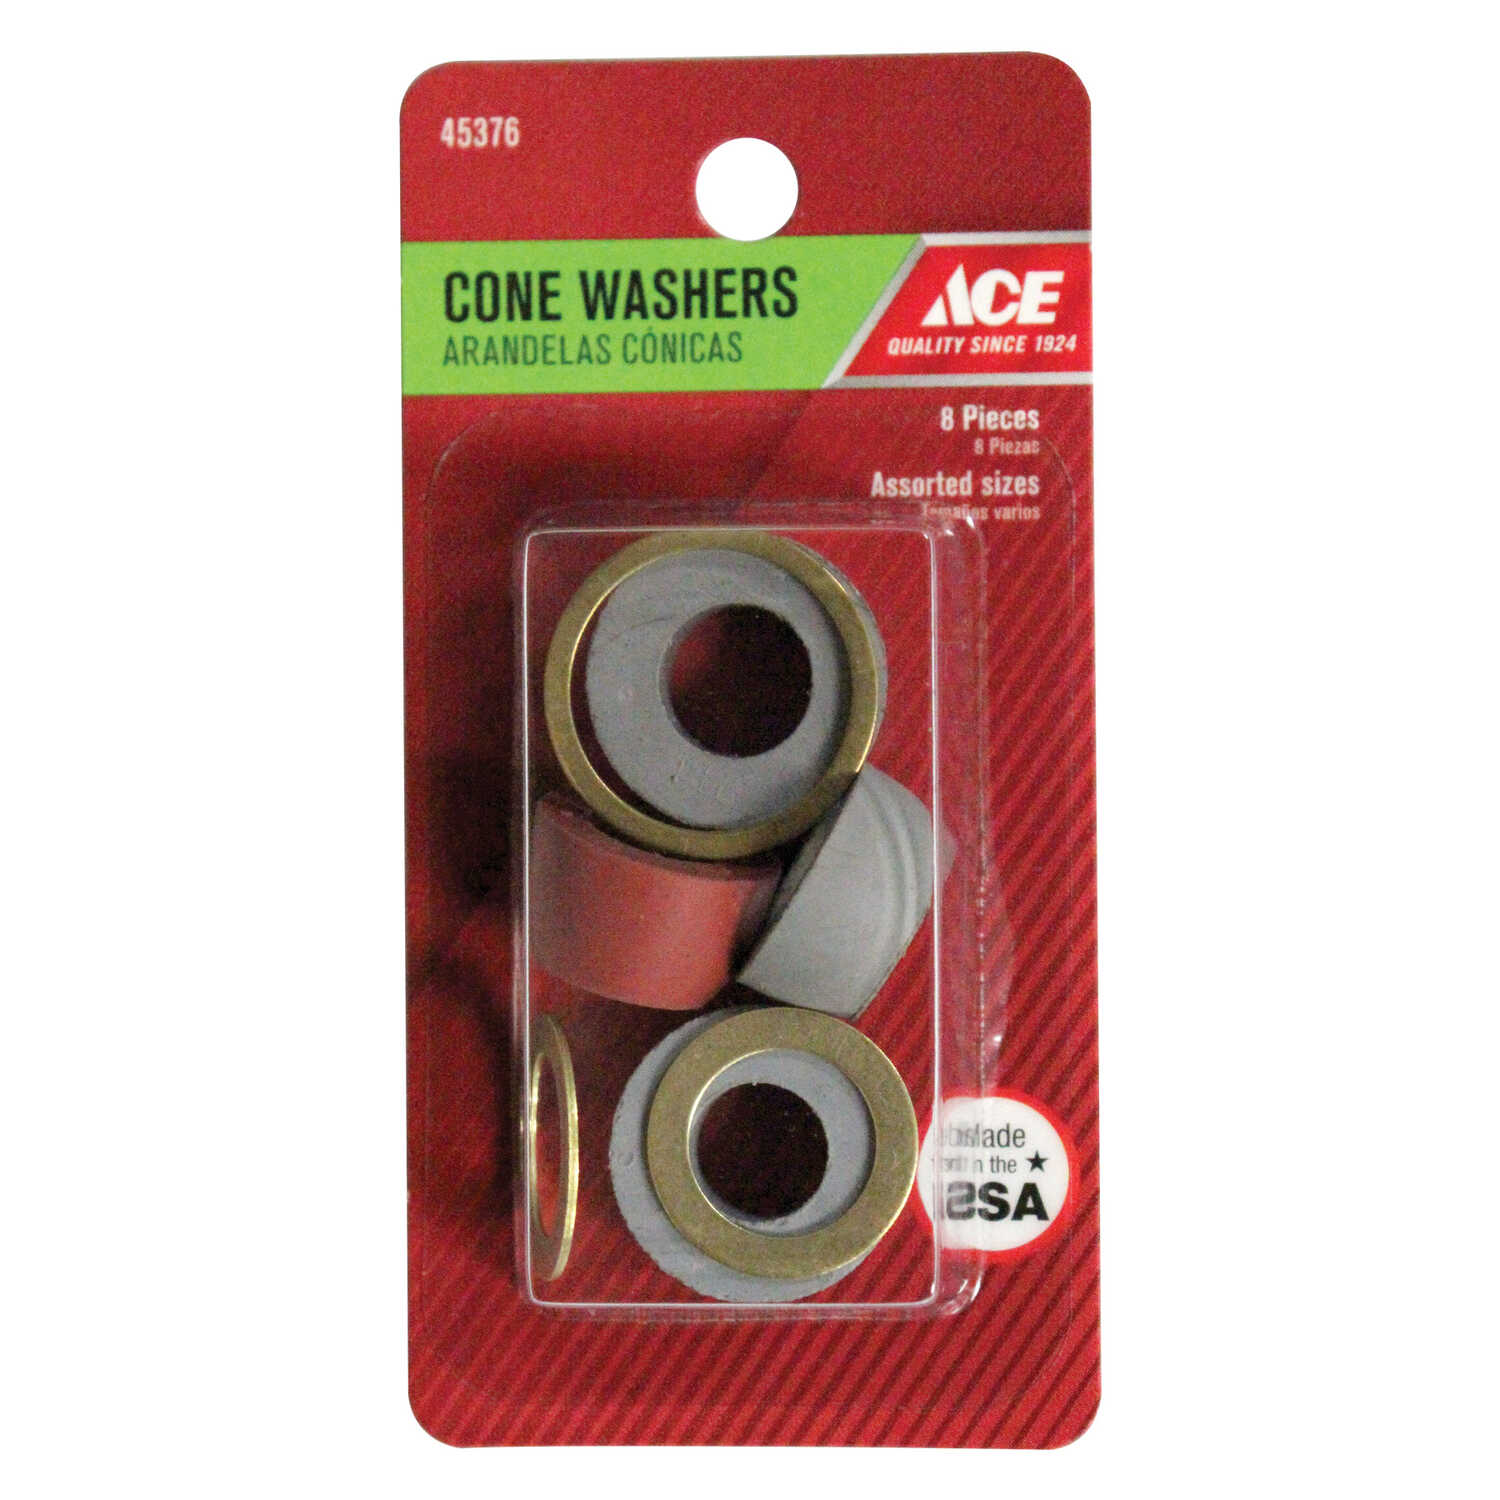 Ace  .5 in. Dia. Rubber  Cone Washer Assortment with Rings  8